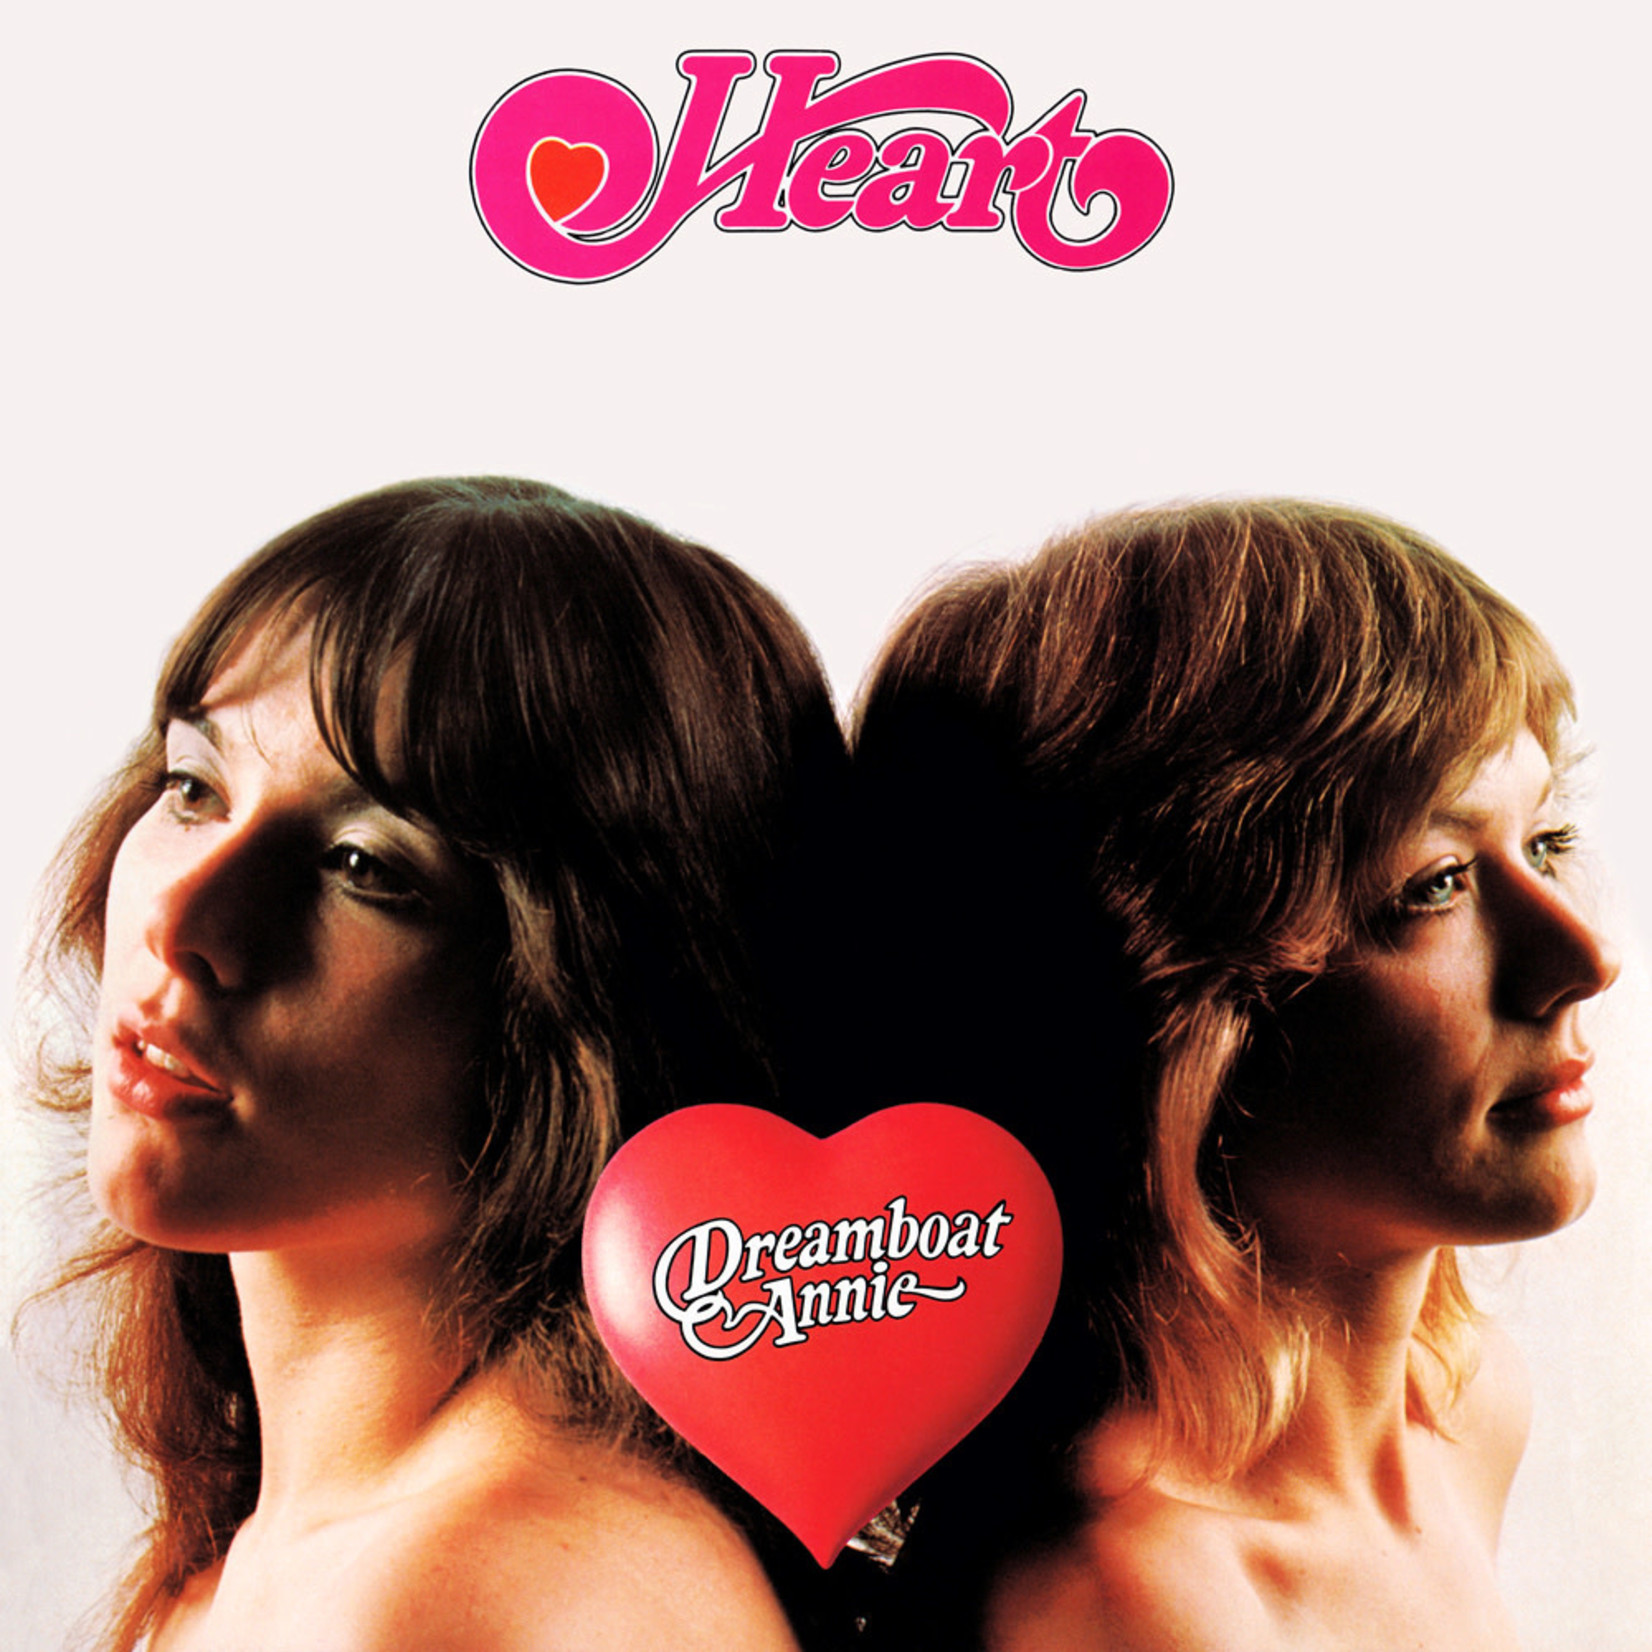 [Vintage] Heart: Dreamboat Annie